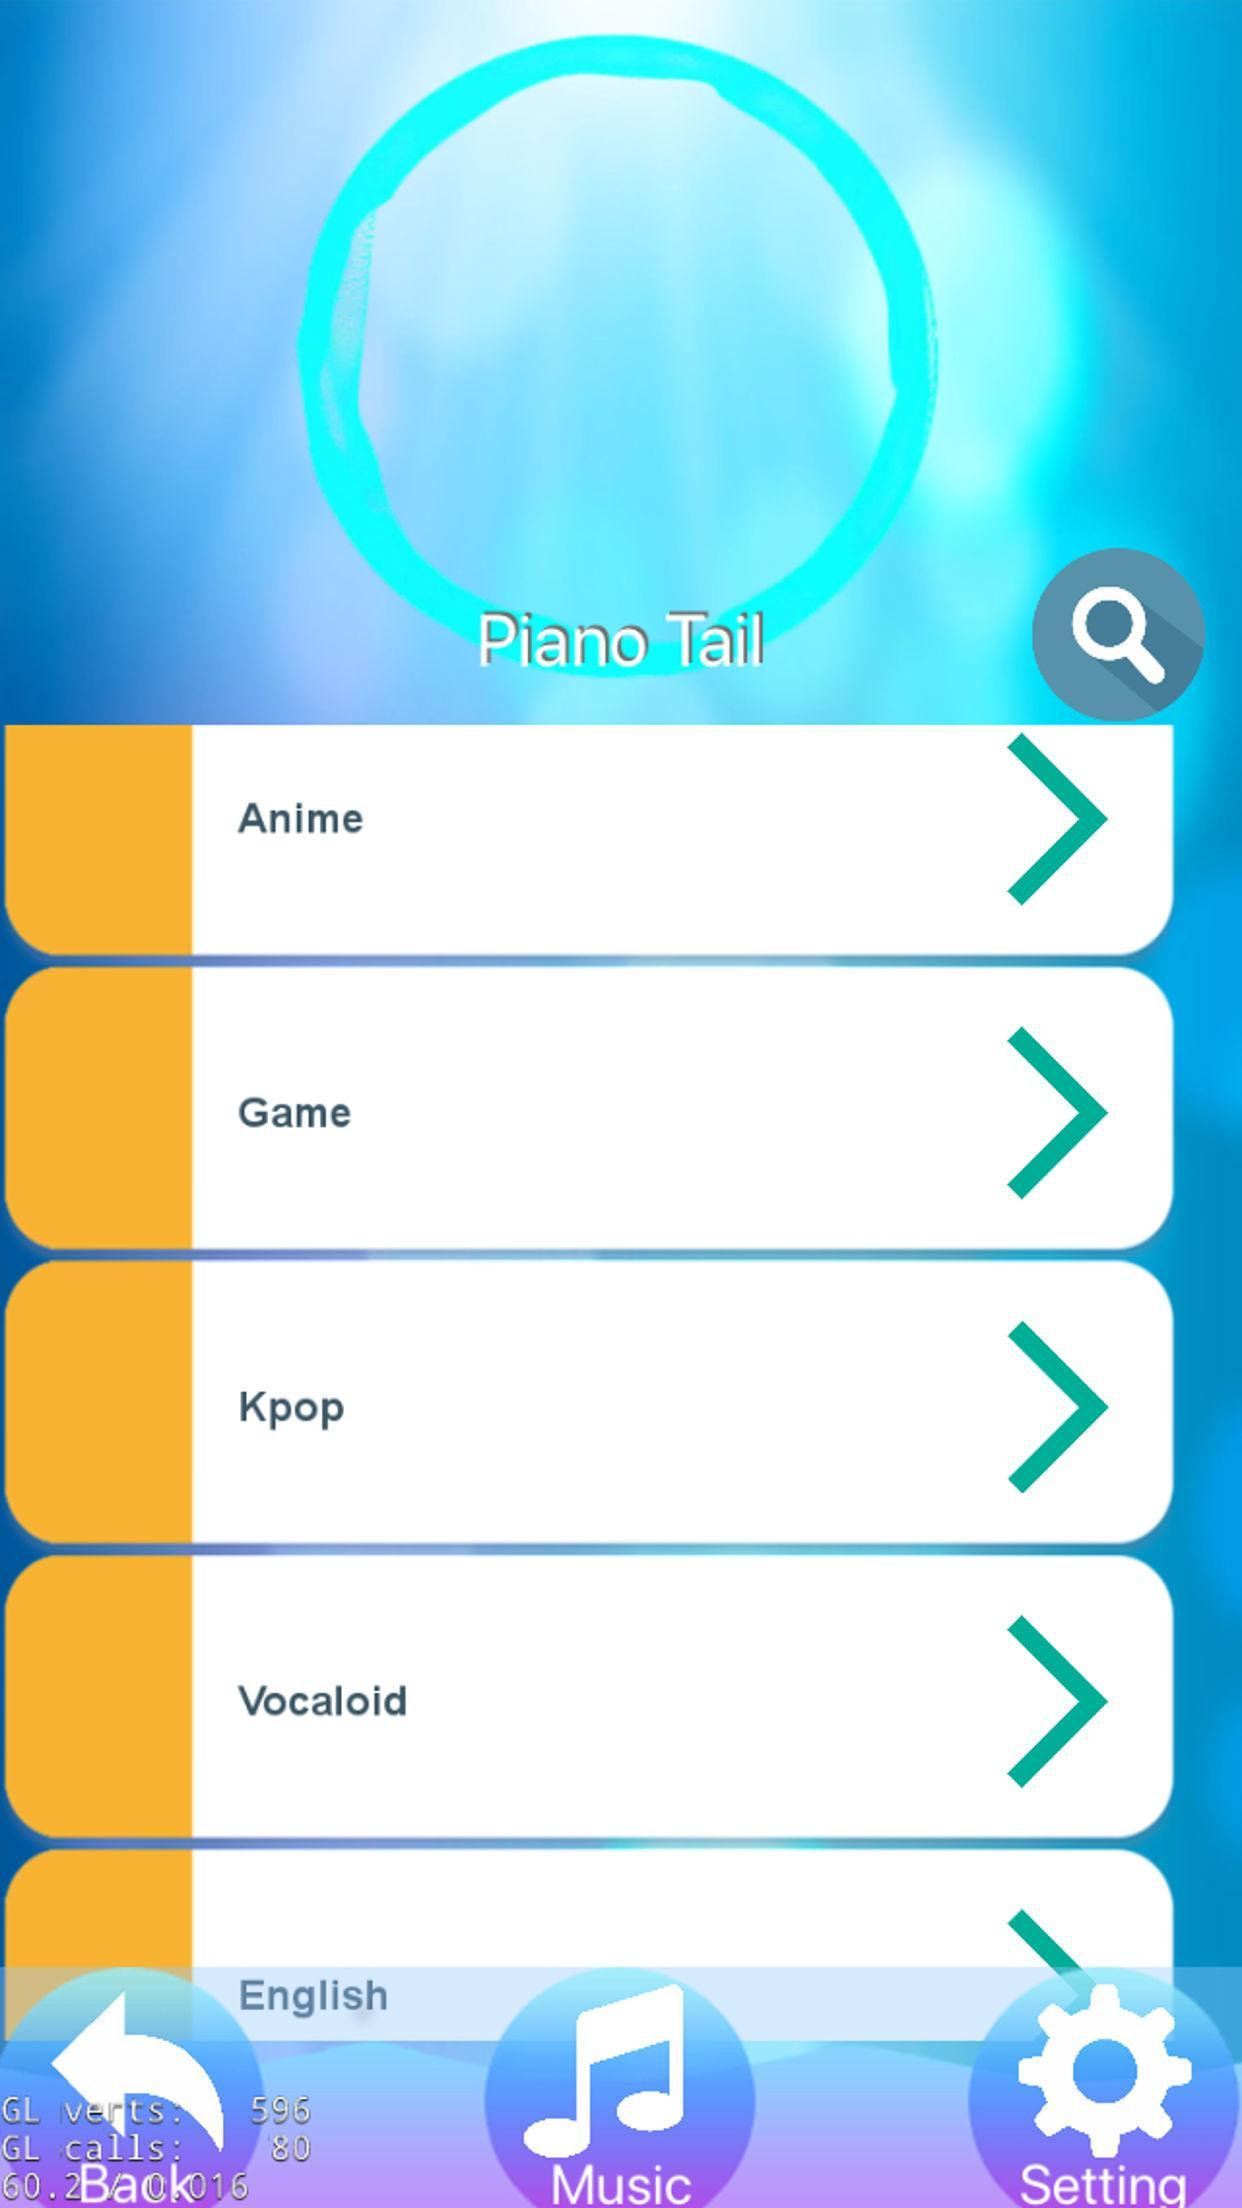 Piano Tail for Android - APK Download